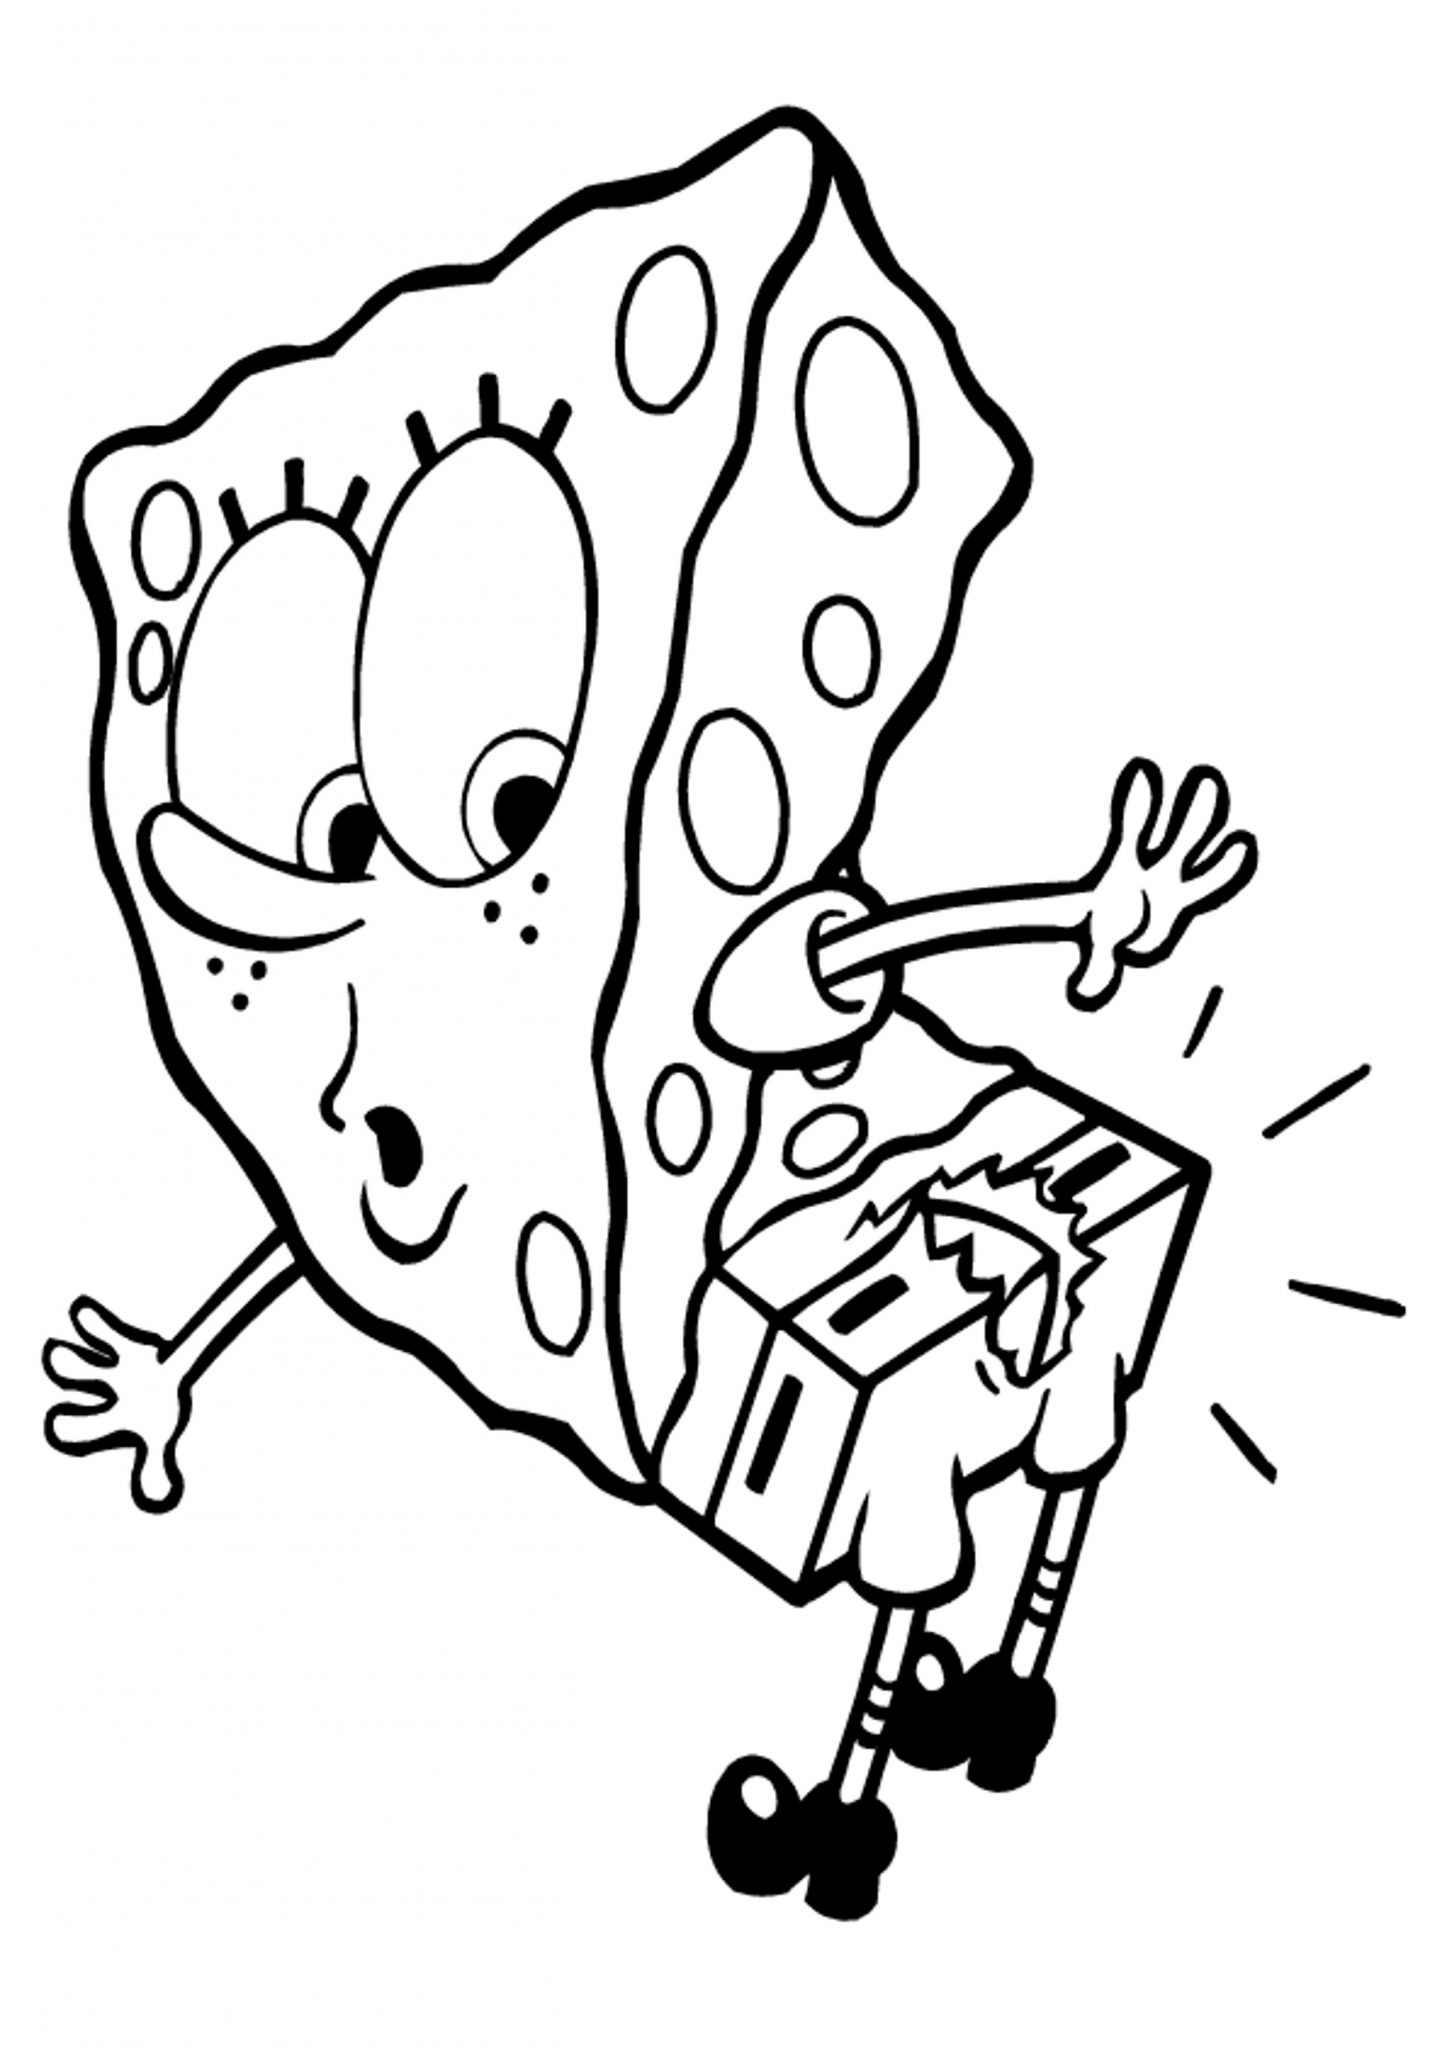 Print & Download - Choosing SpongeBob Coloring Pages For Your Children -